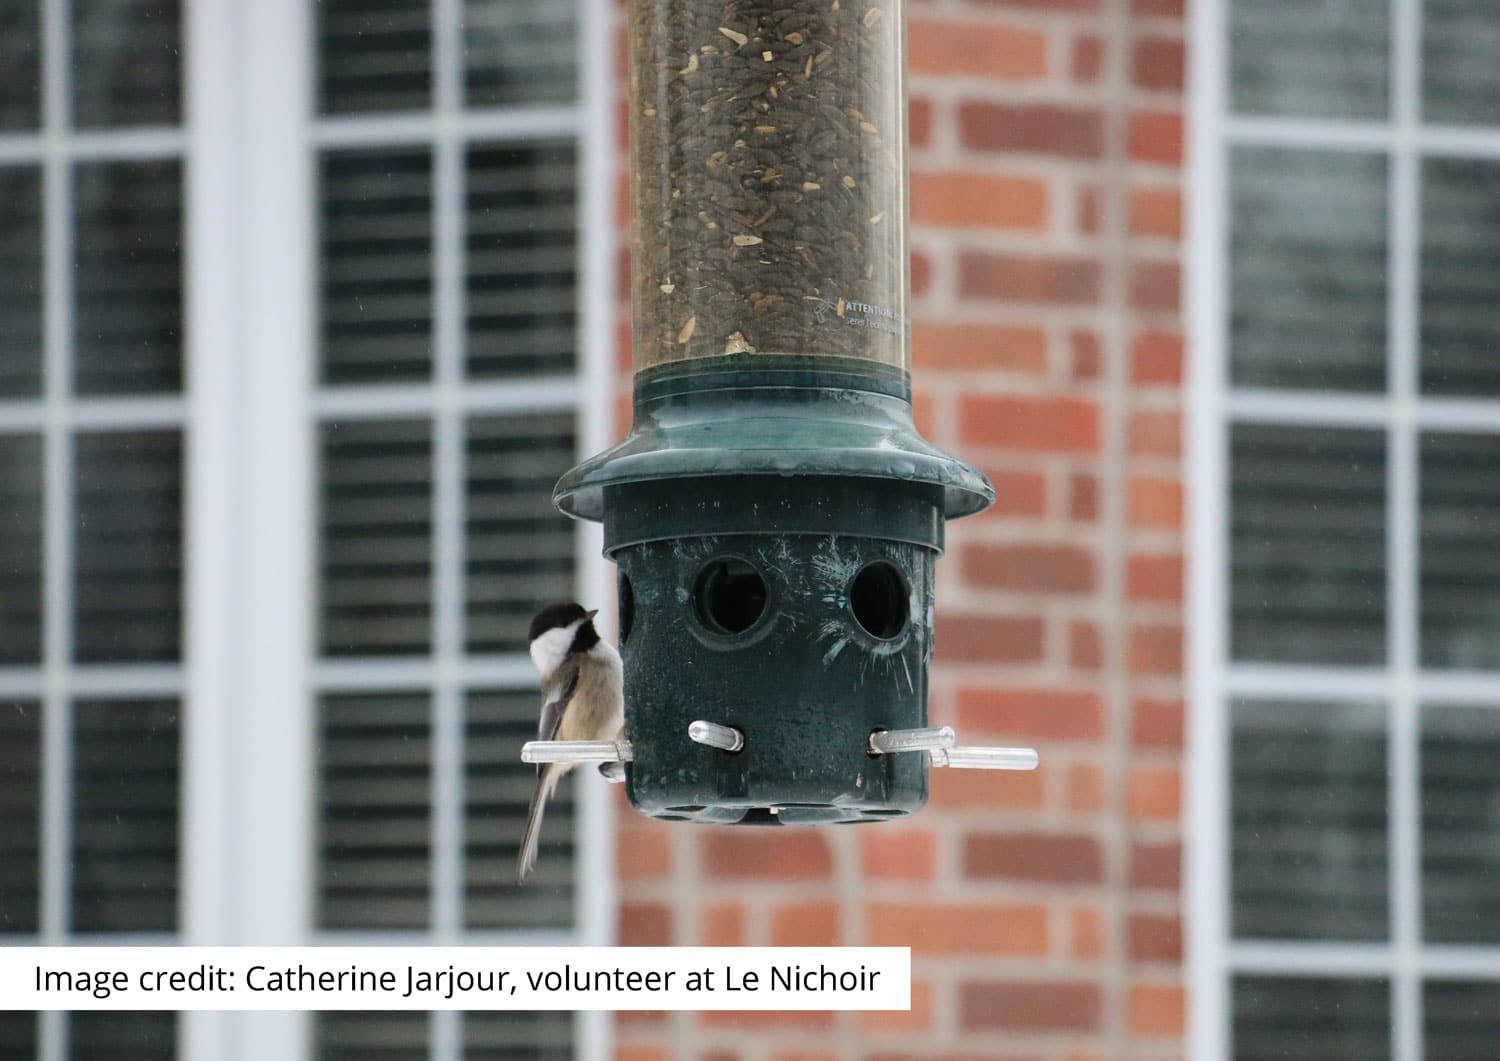 Bird-Window Collisions from a Wild Bird Rehabilitation Centre's Point of View